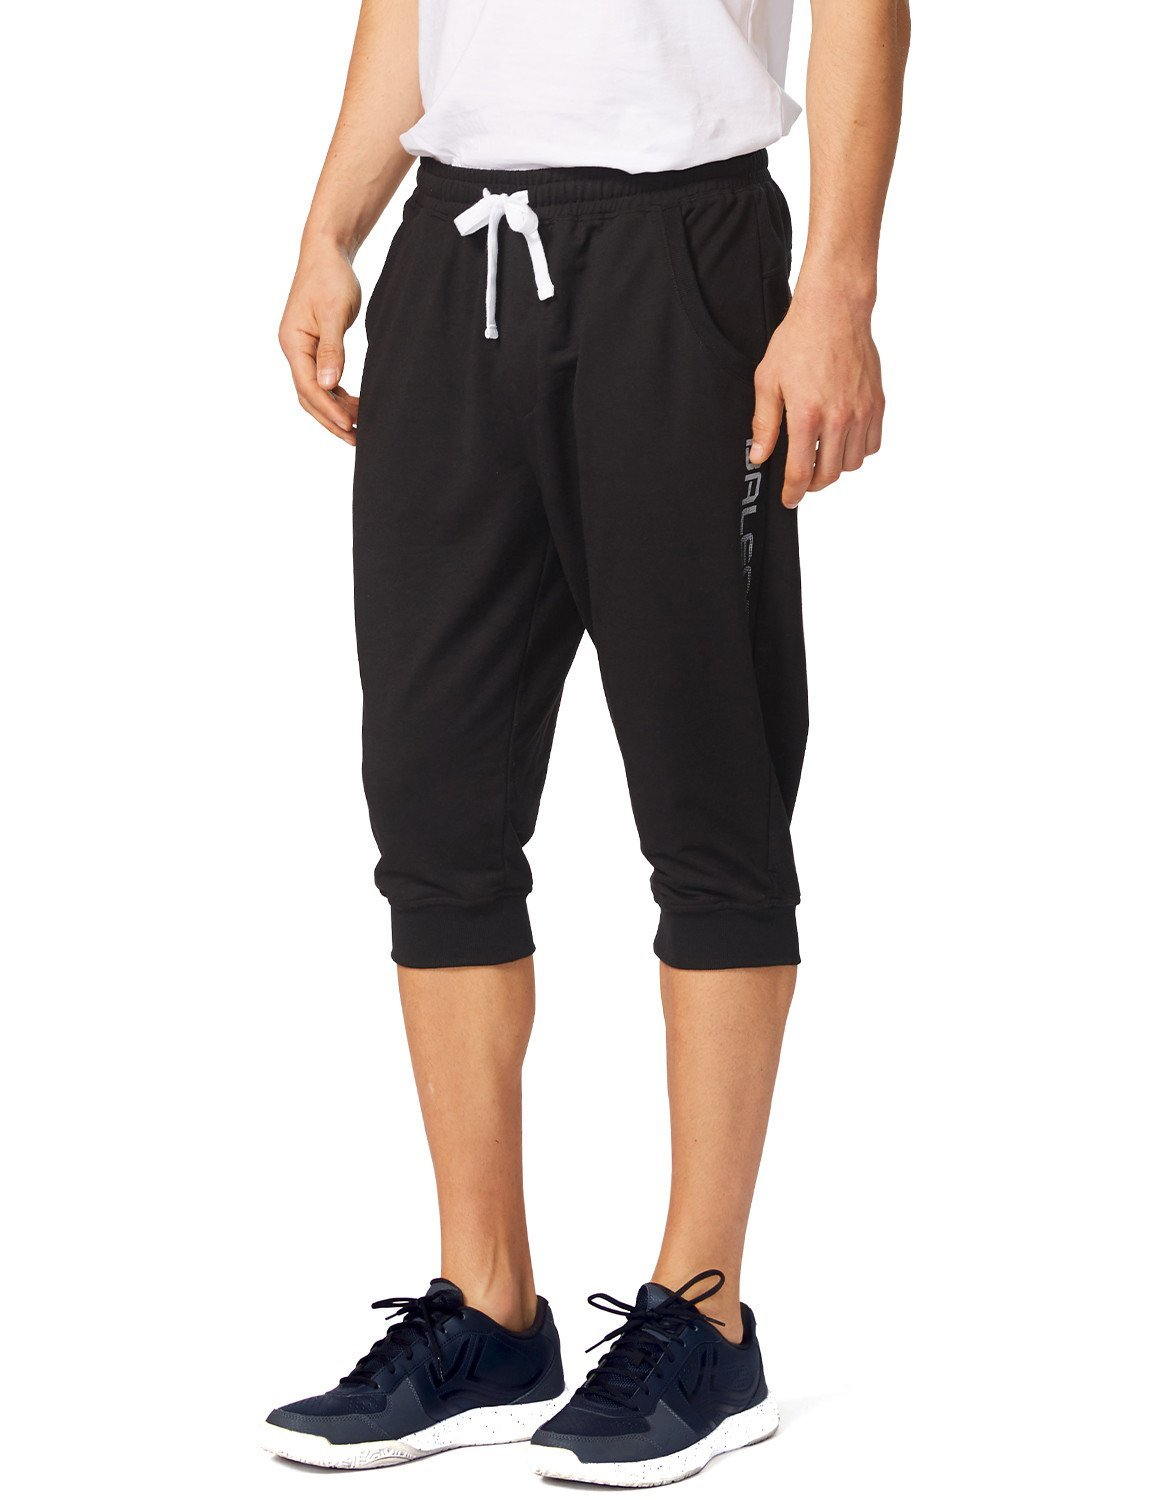 53b0f310 Best Rated in Men's Yoga Clothing & Helpful Customer Reviews ...